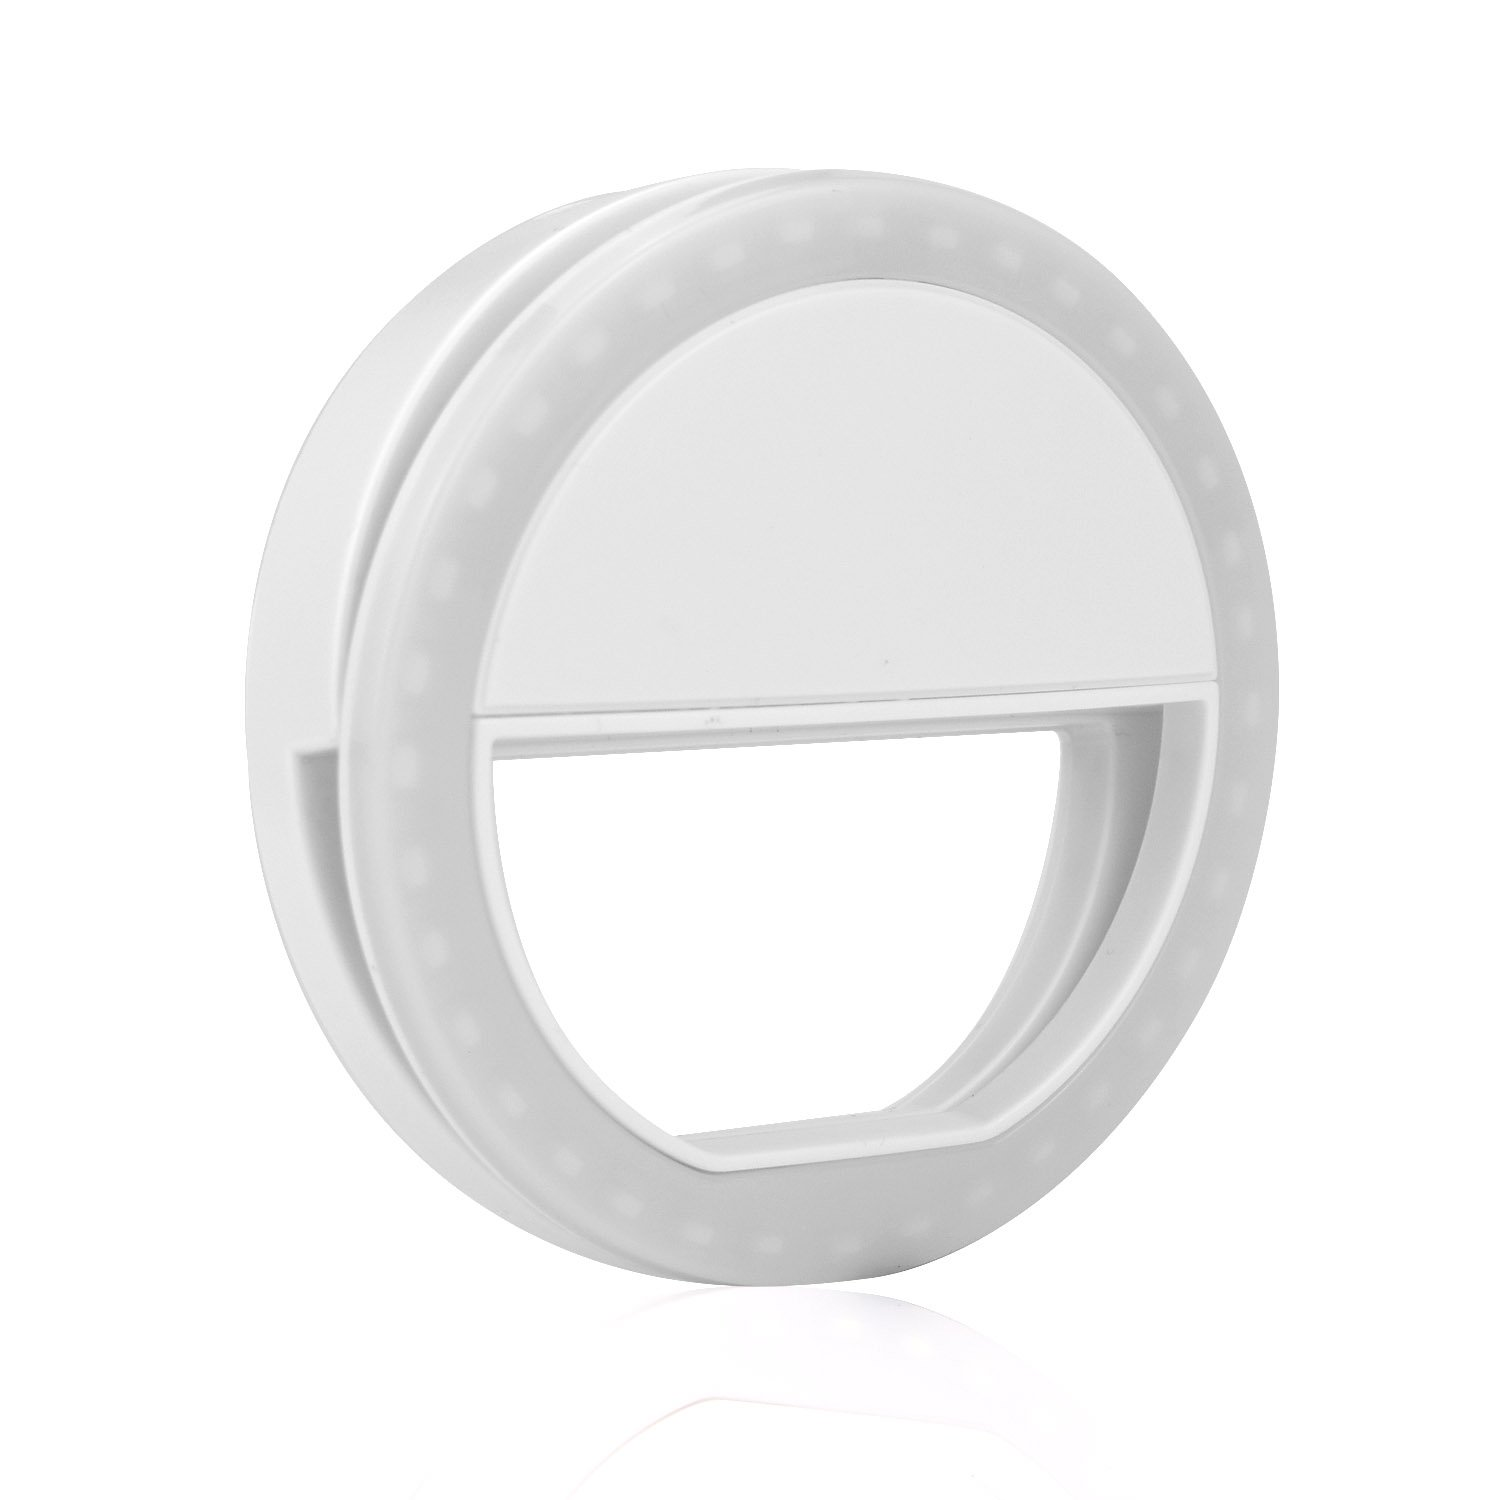 SmartElite Selfie Ring Light, Rechargeable Battery 36 LED Fill-light, Portable Clip-on Selfie Camera Light, 3-Level Adjustable Brightness for Tablet/iPad/Camera/Laptop/Samsung Galaxy Photography Video